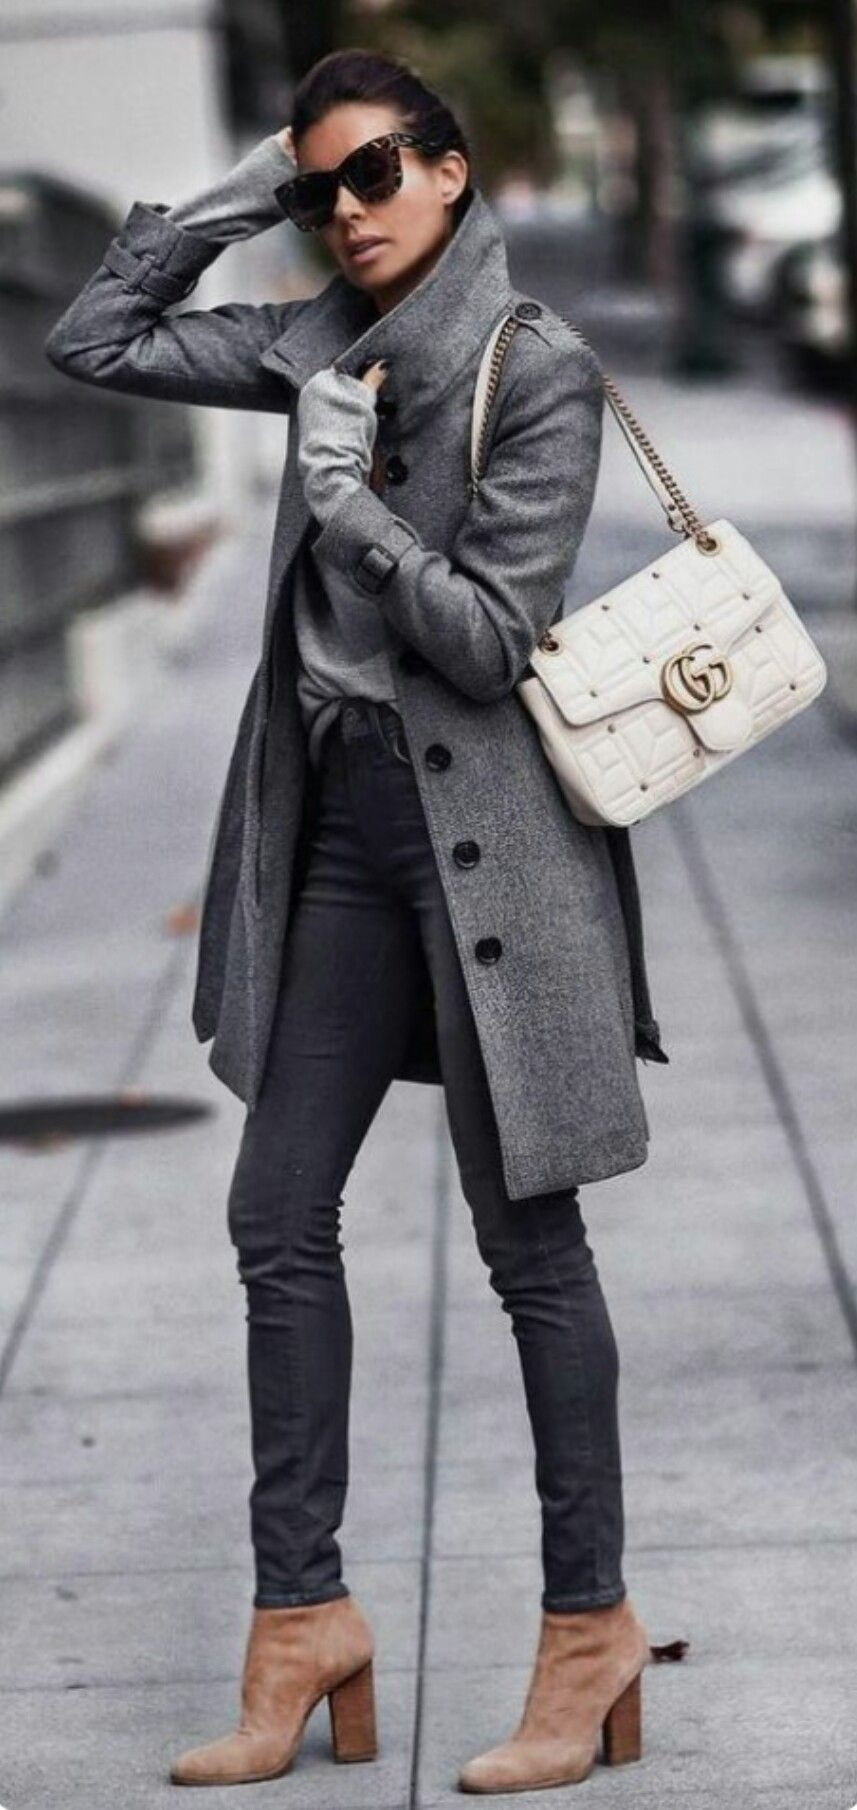 Perfect outfit for chilly days. #fashionistas #ootd